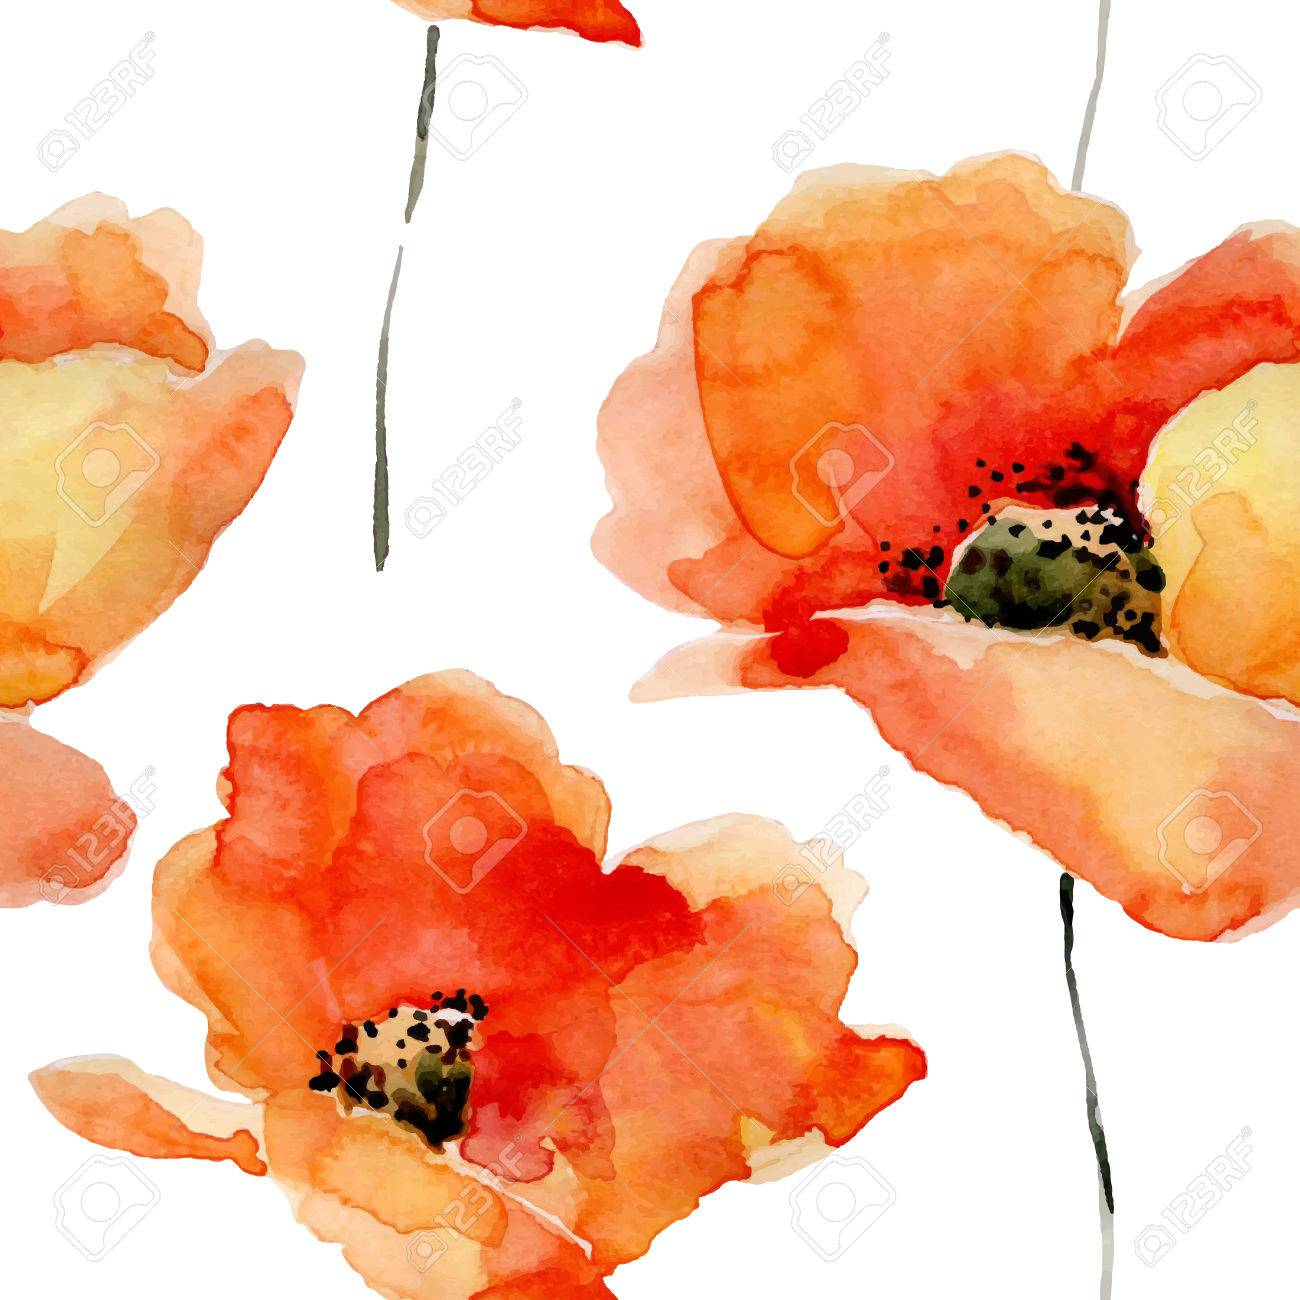 Watercolor flowers seamless pattern with poppies. Bright colors watercolor background. - 51894797